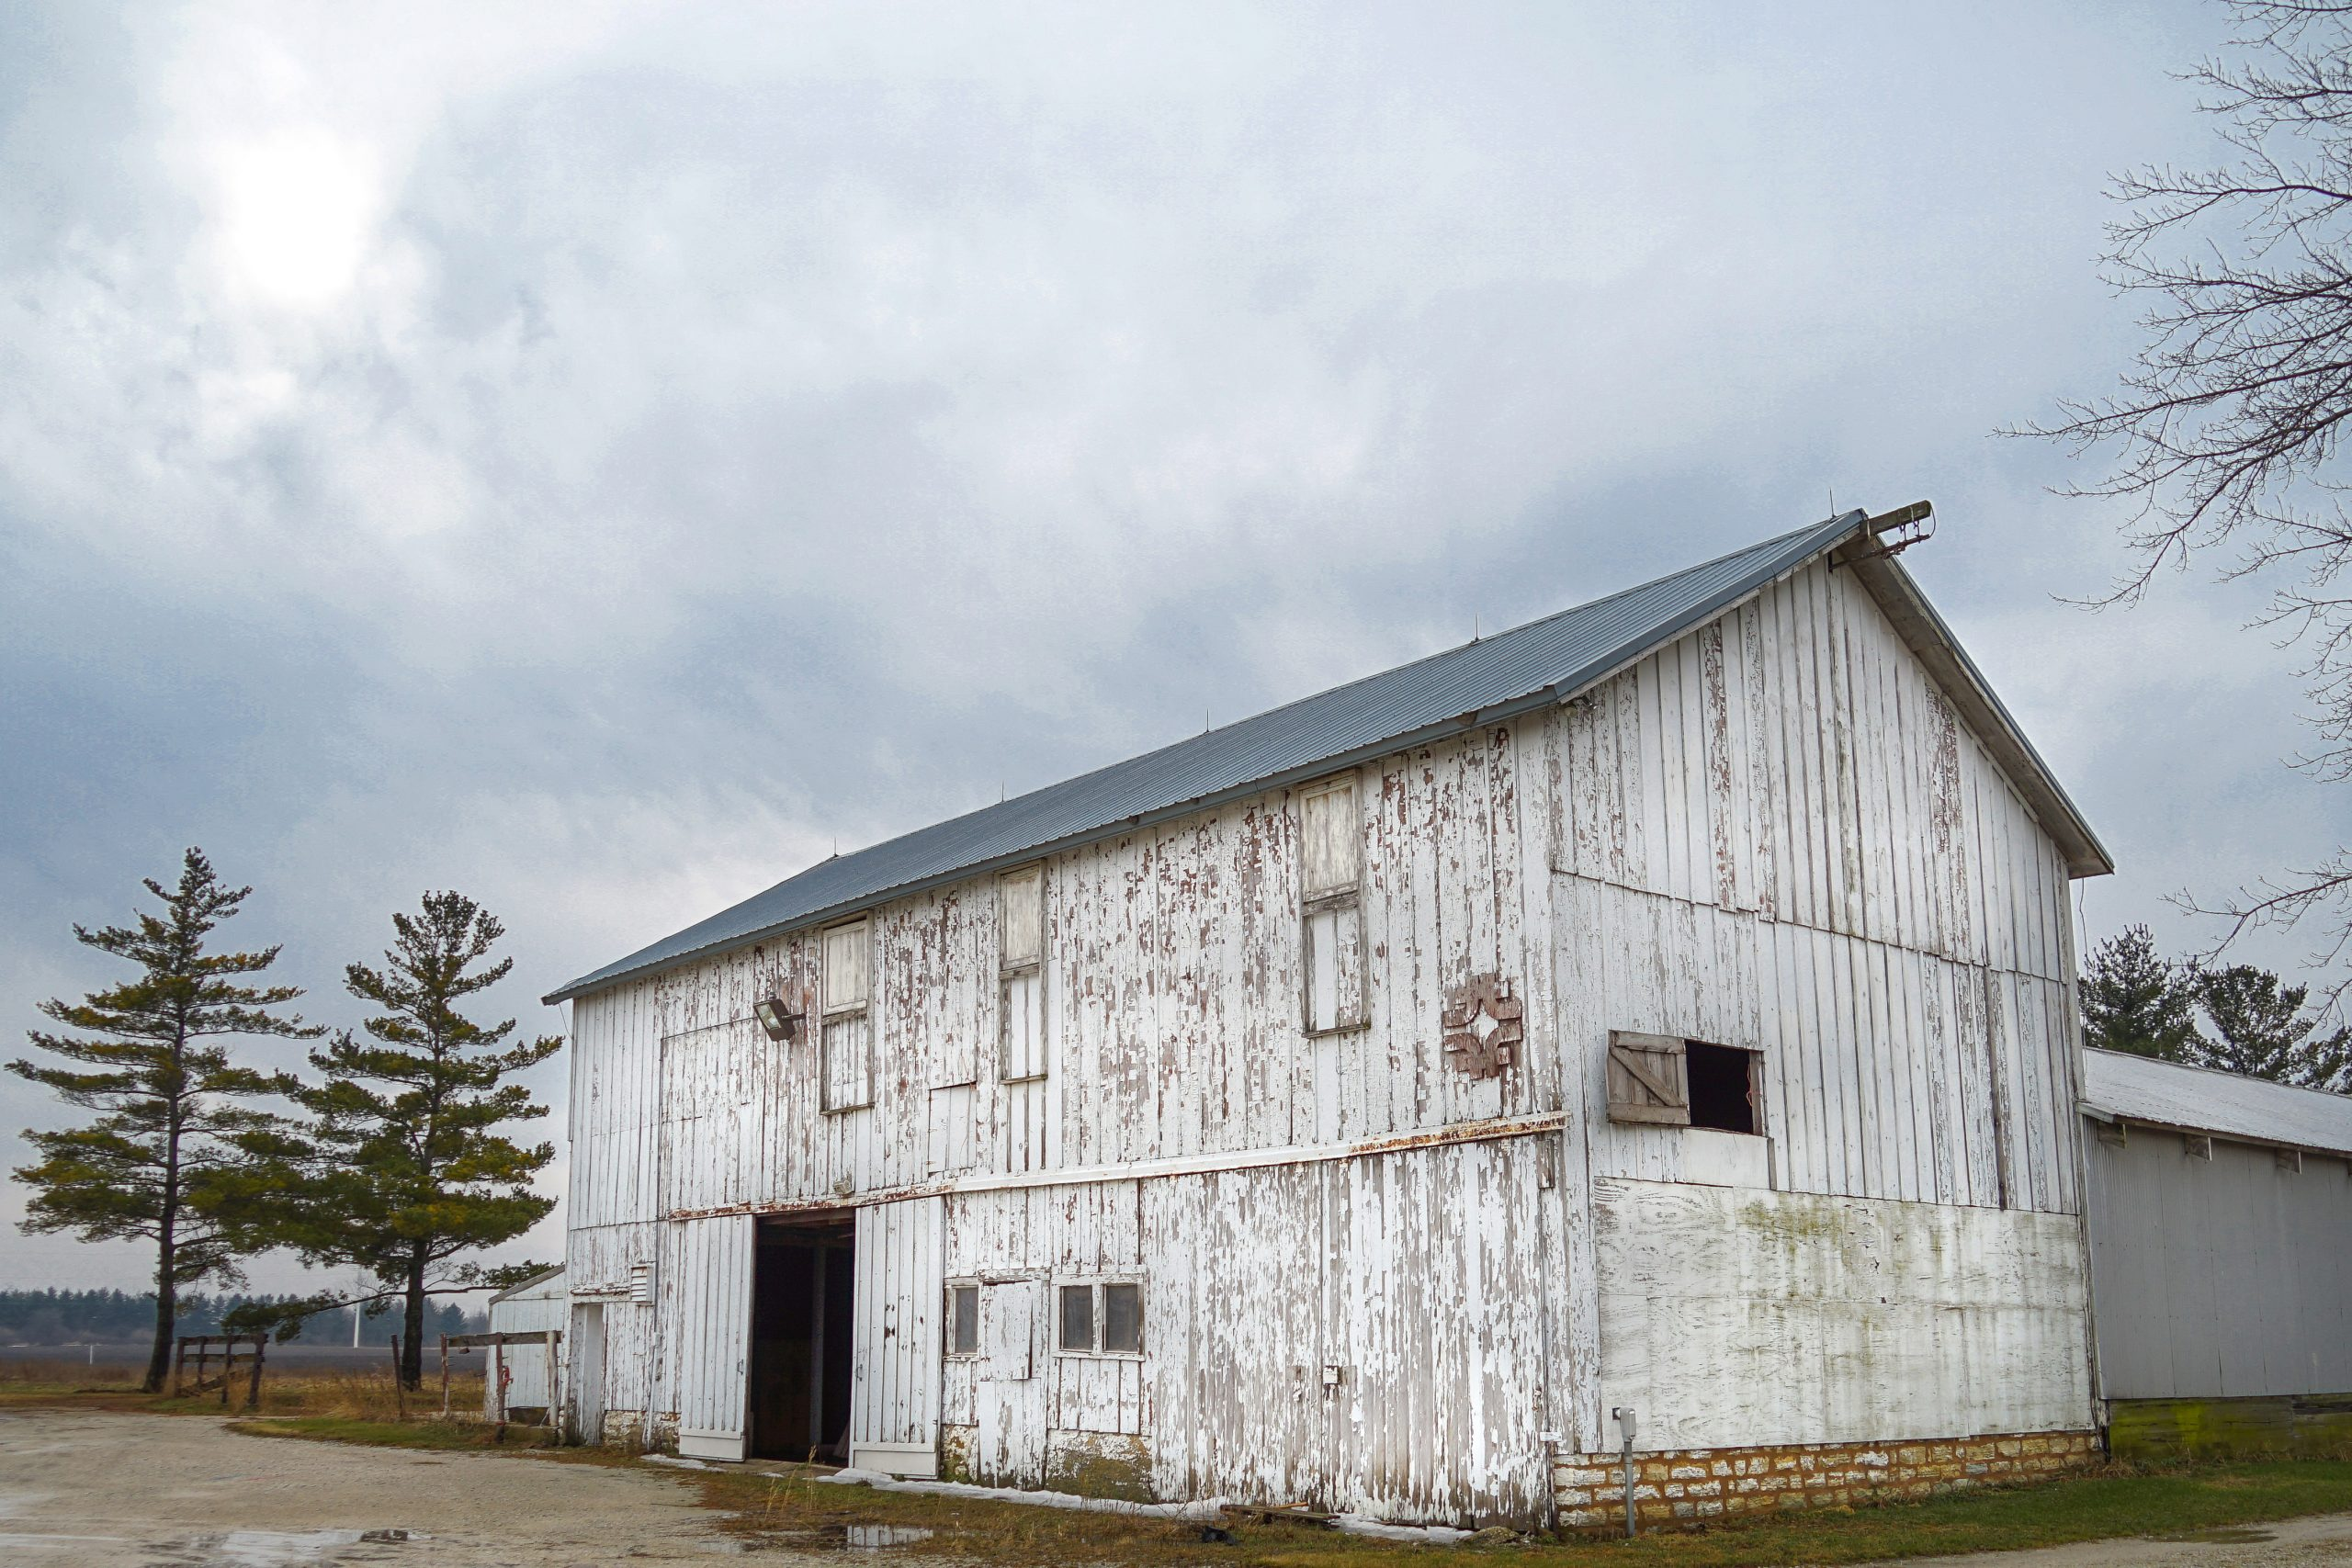 The old horse barn was rustic and stately. This photo was taken in January 2017. building, barn Photo: Leticia Shaddix